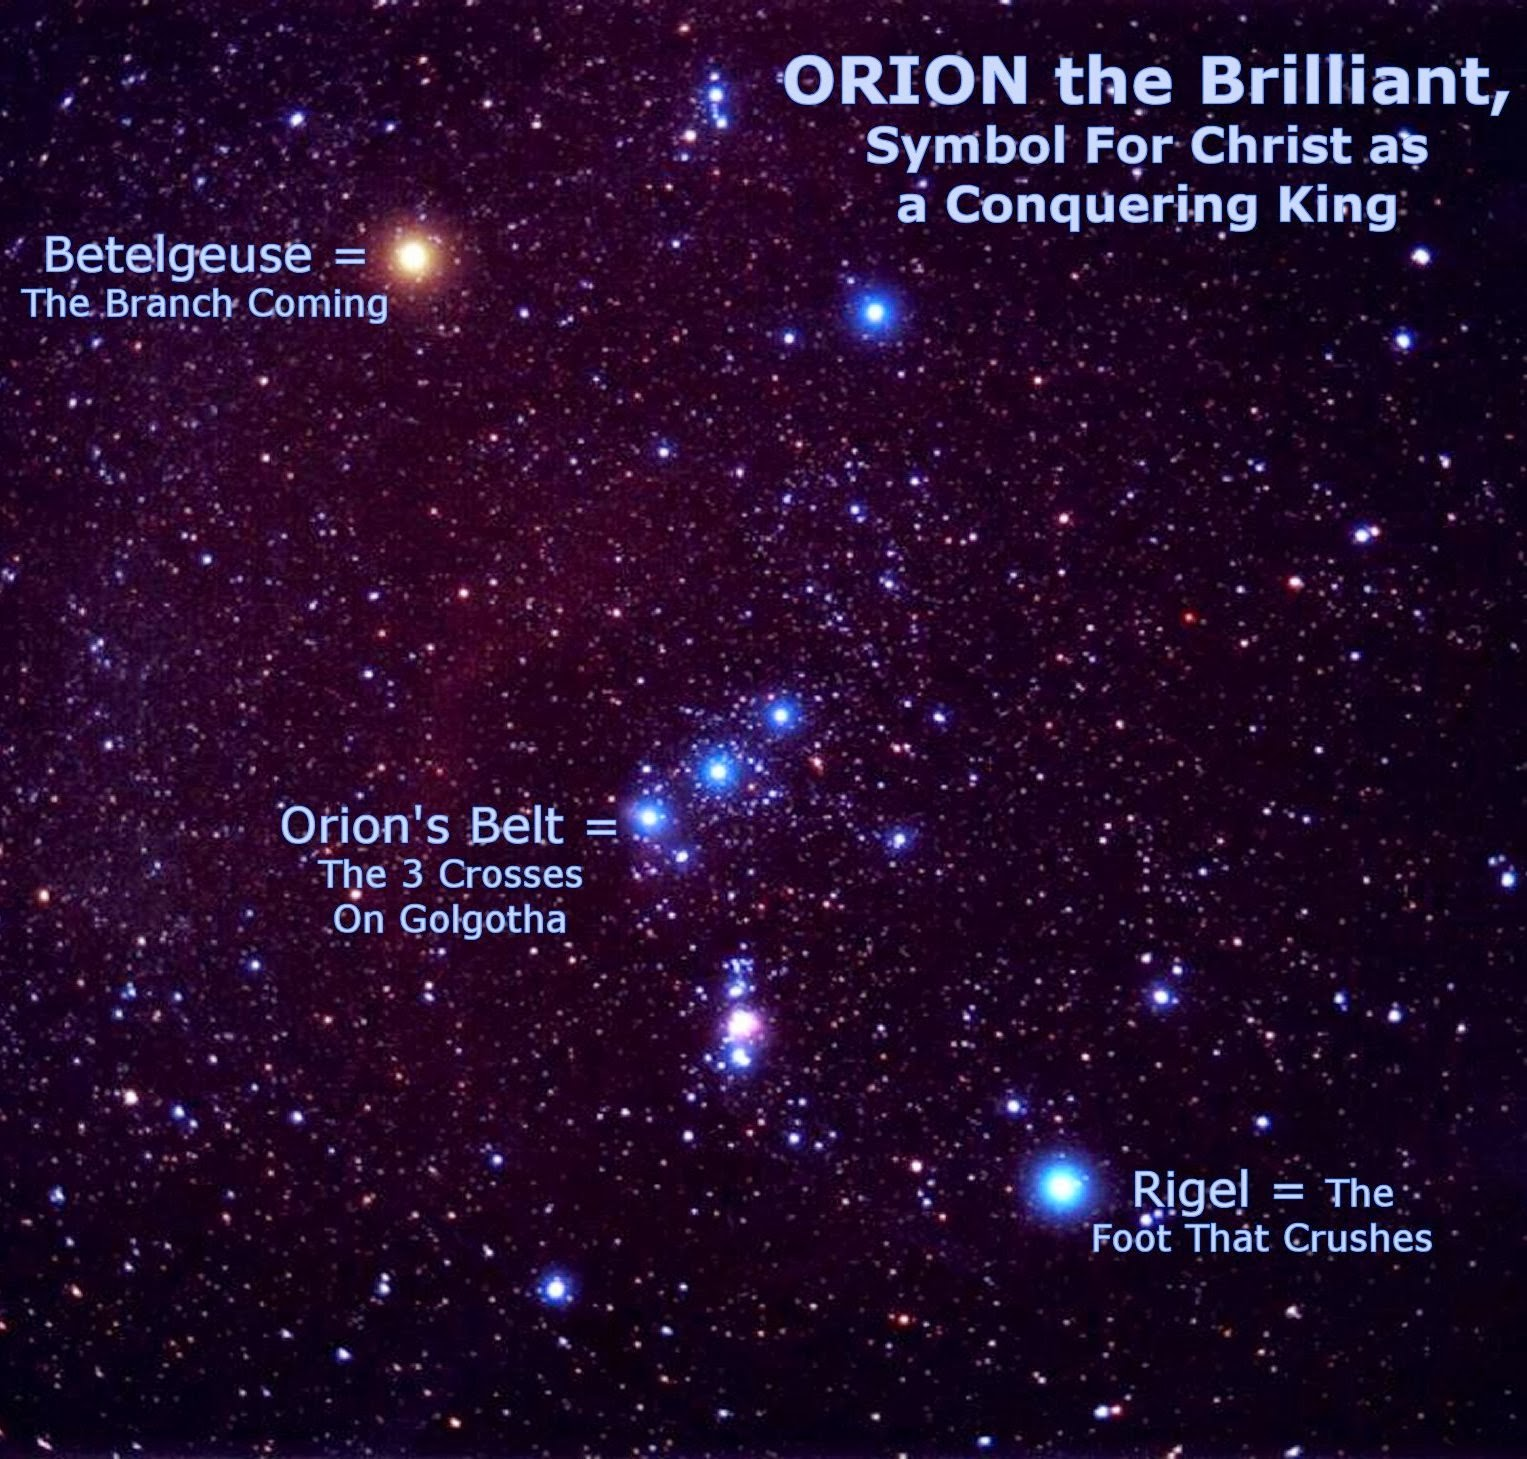 Pillar Of Enoch Ministry Blog The Meaning Of The Orion